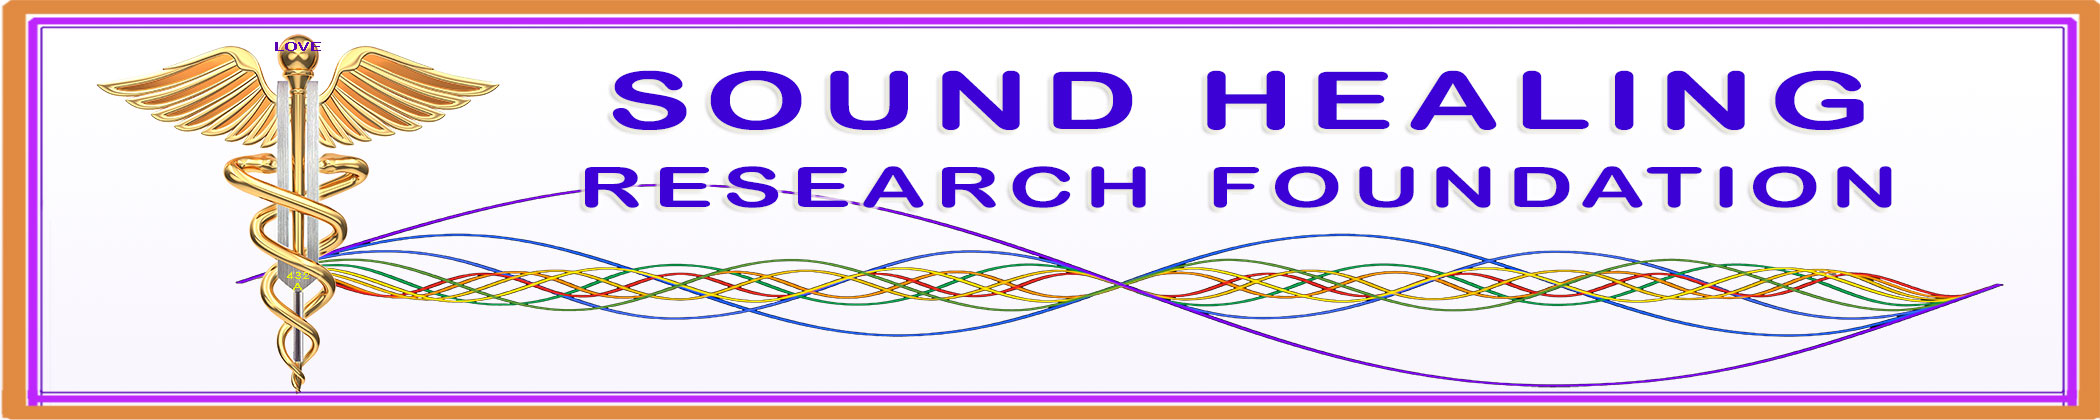 Home - Sound Healing Research Foundation